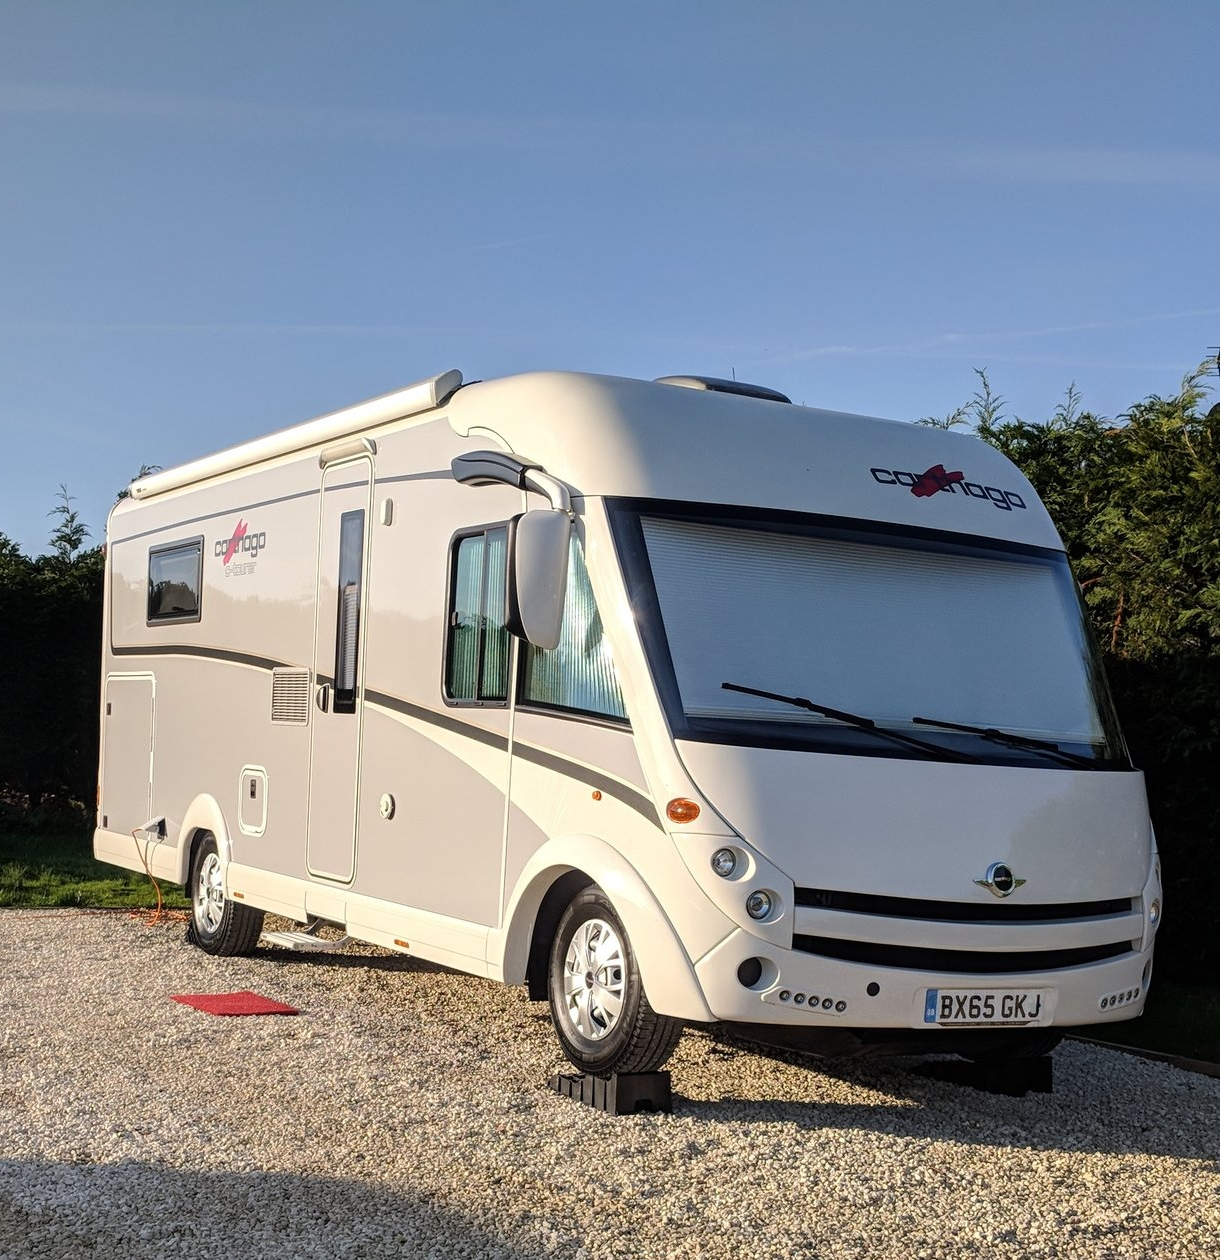 An A-Class or Integrated Motorhome